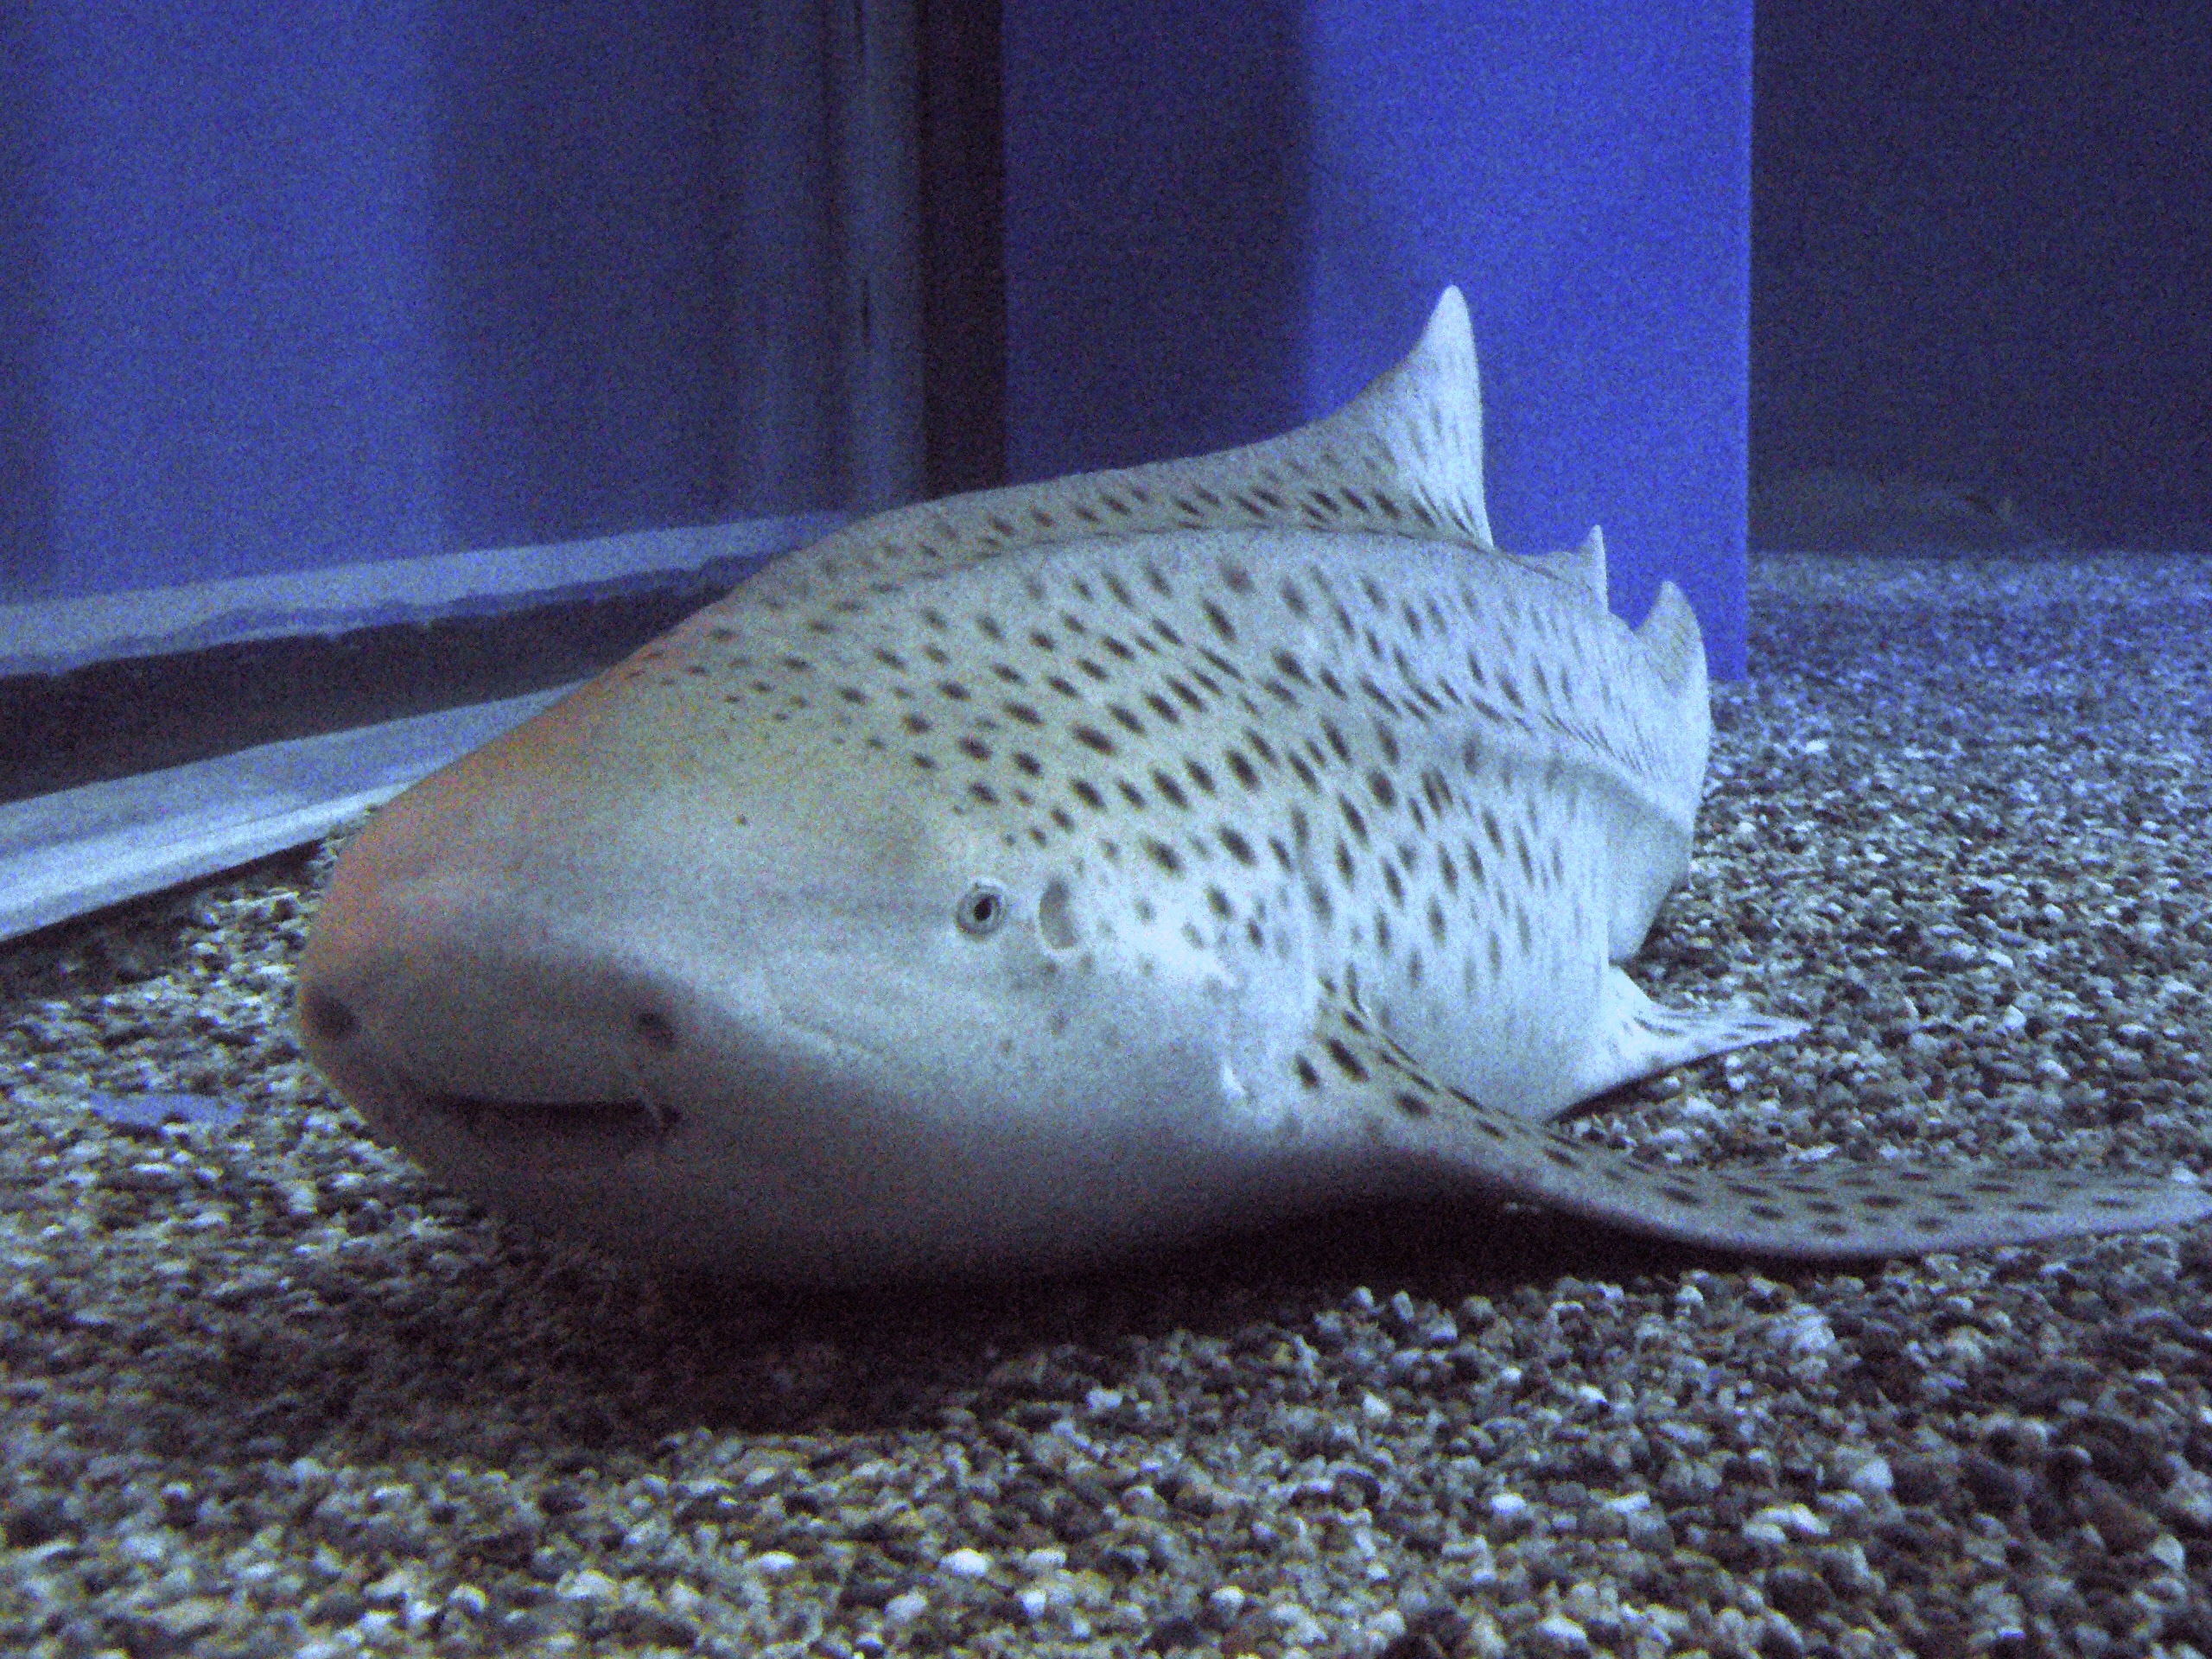 Female sharks asexual reproduction advantages